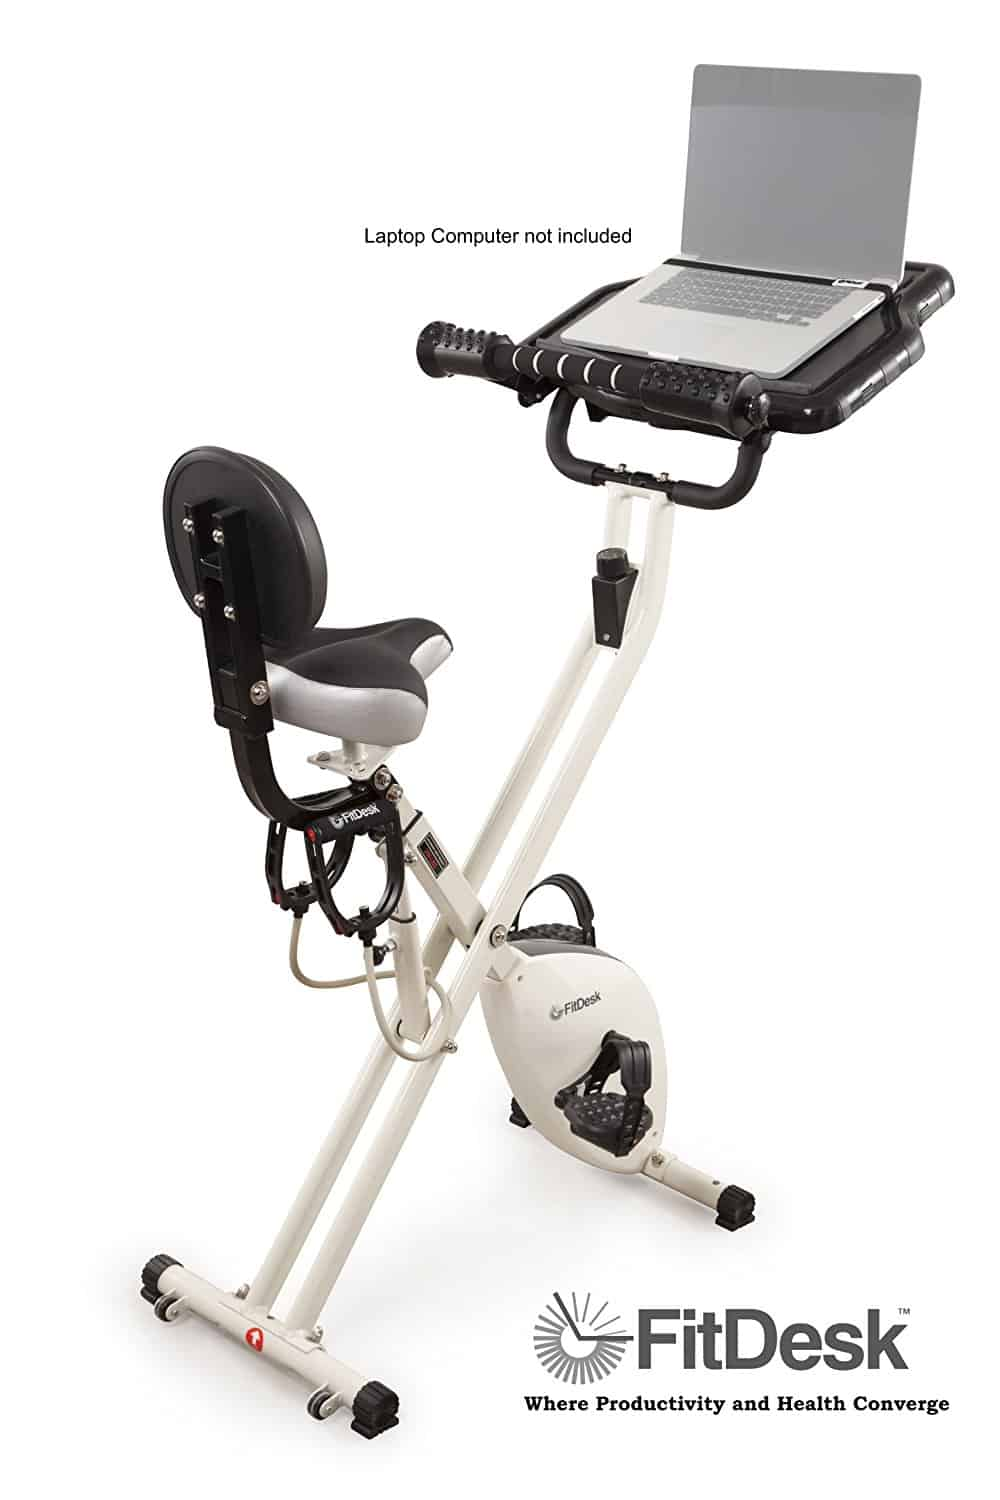 Using this fit desk exercise bike is the only way I've been able to get physical activity as a blogger.